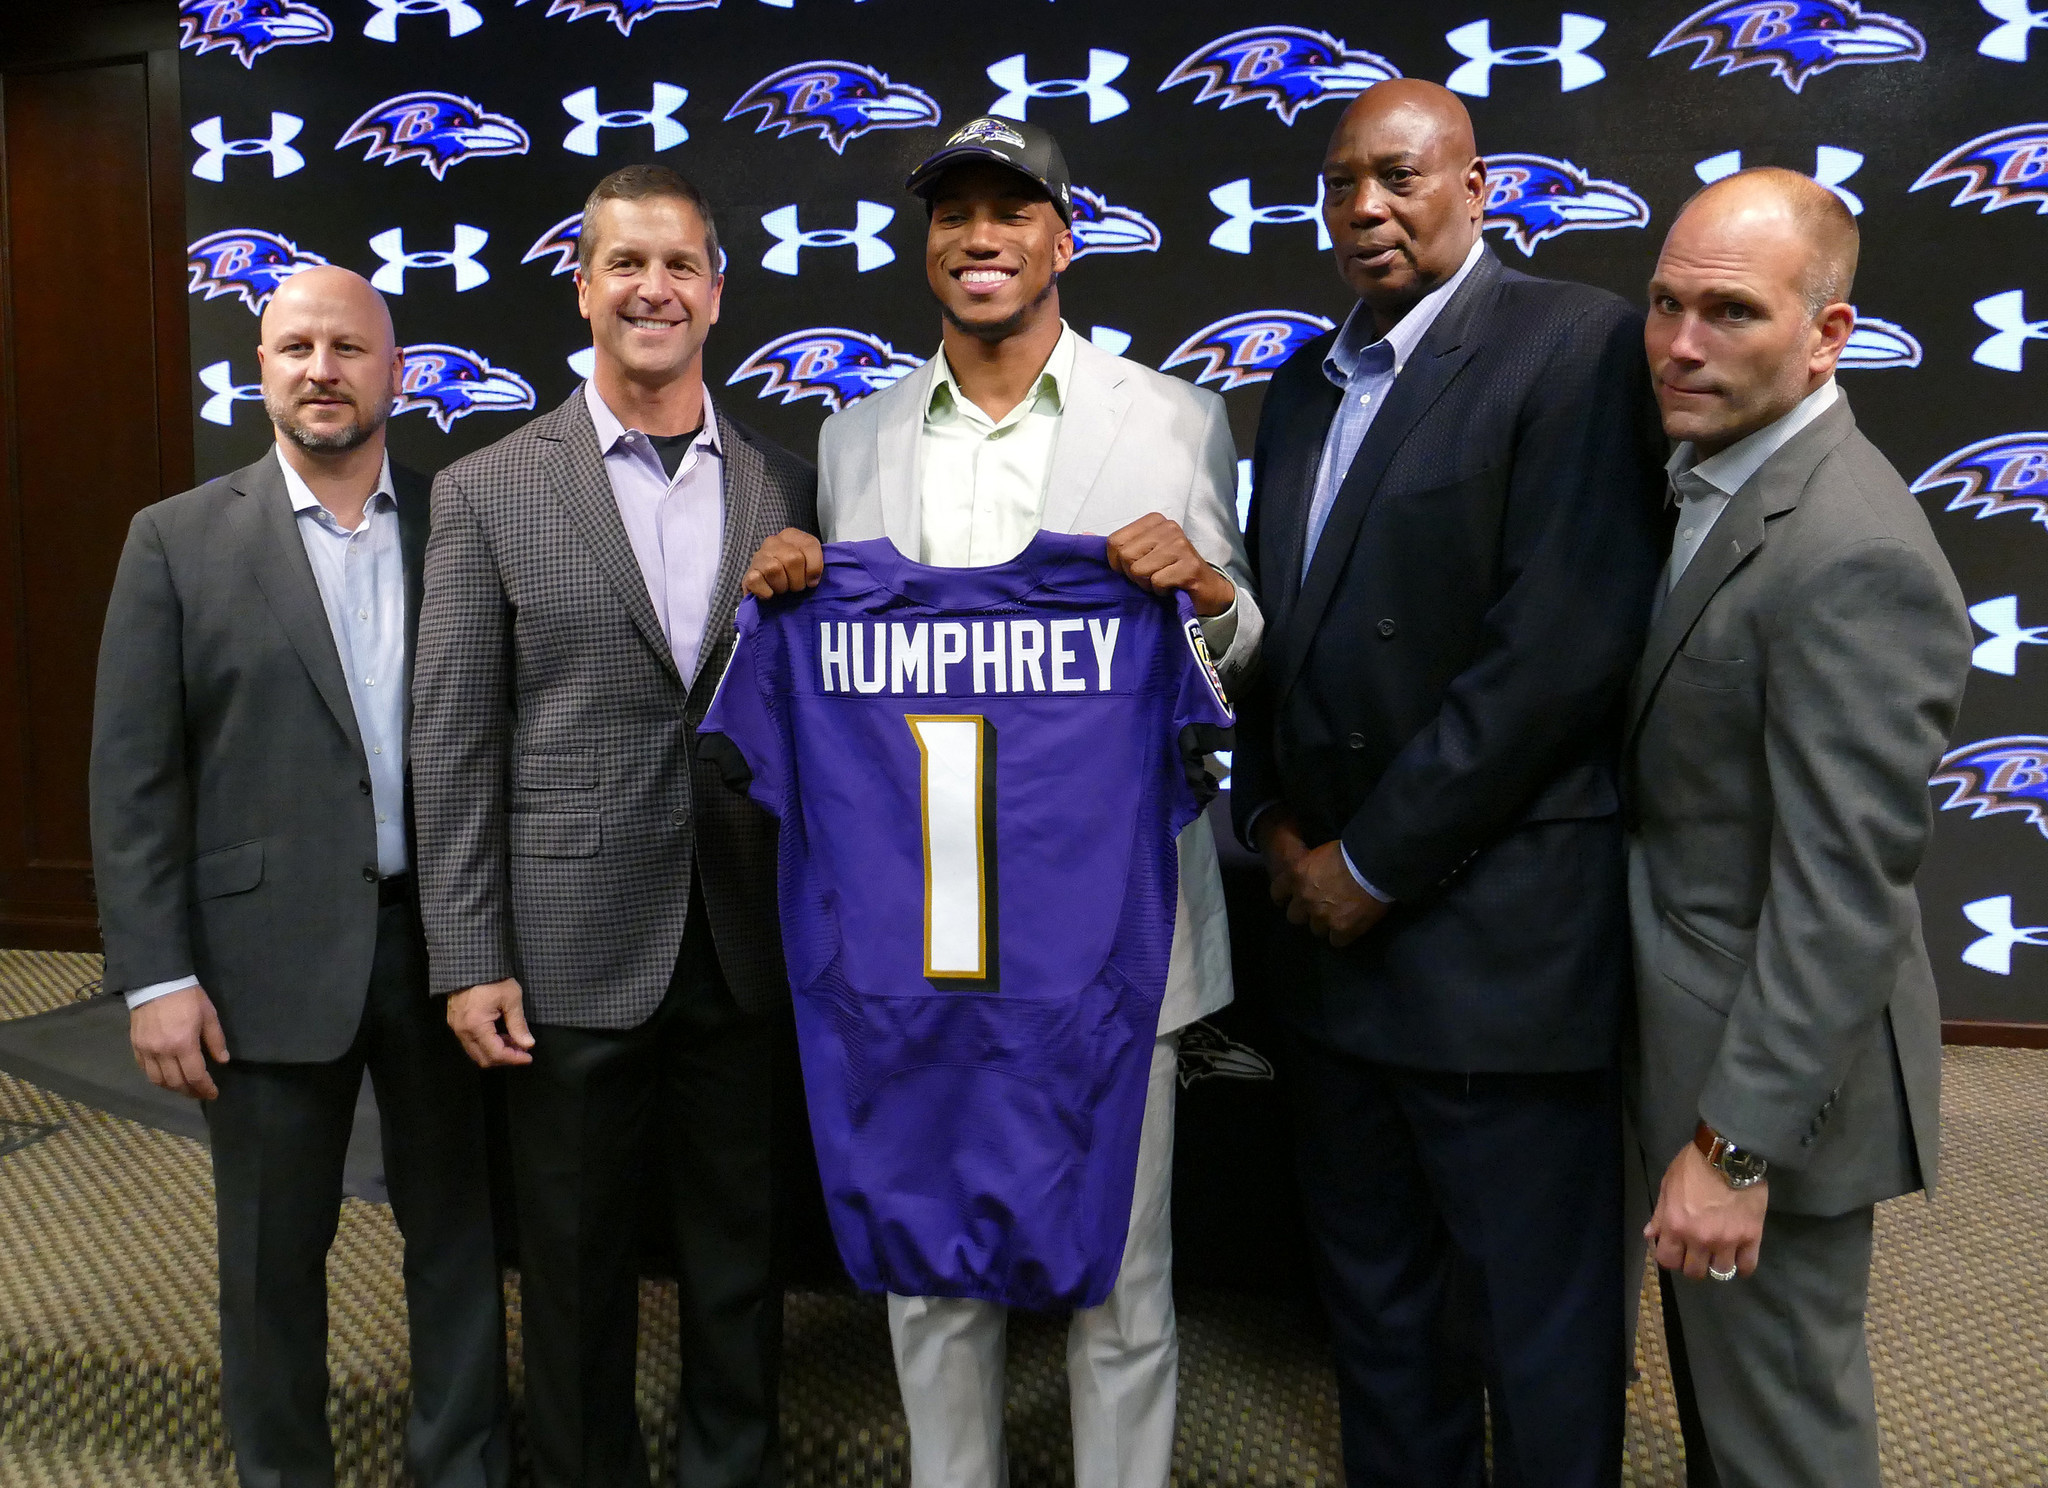 Bal-meet-the-ravens-2017-draft-picks-20170429